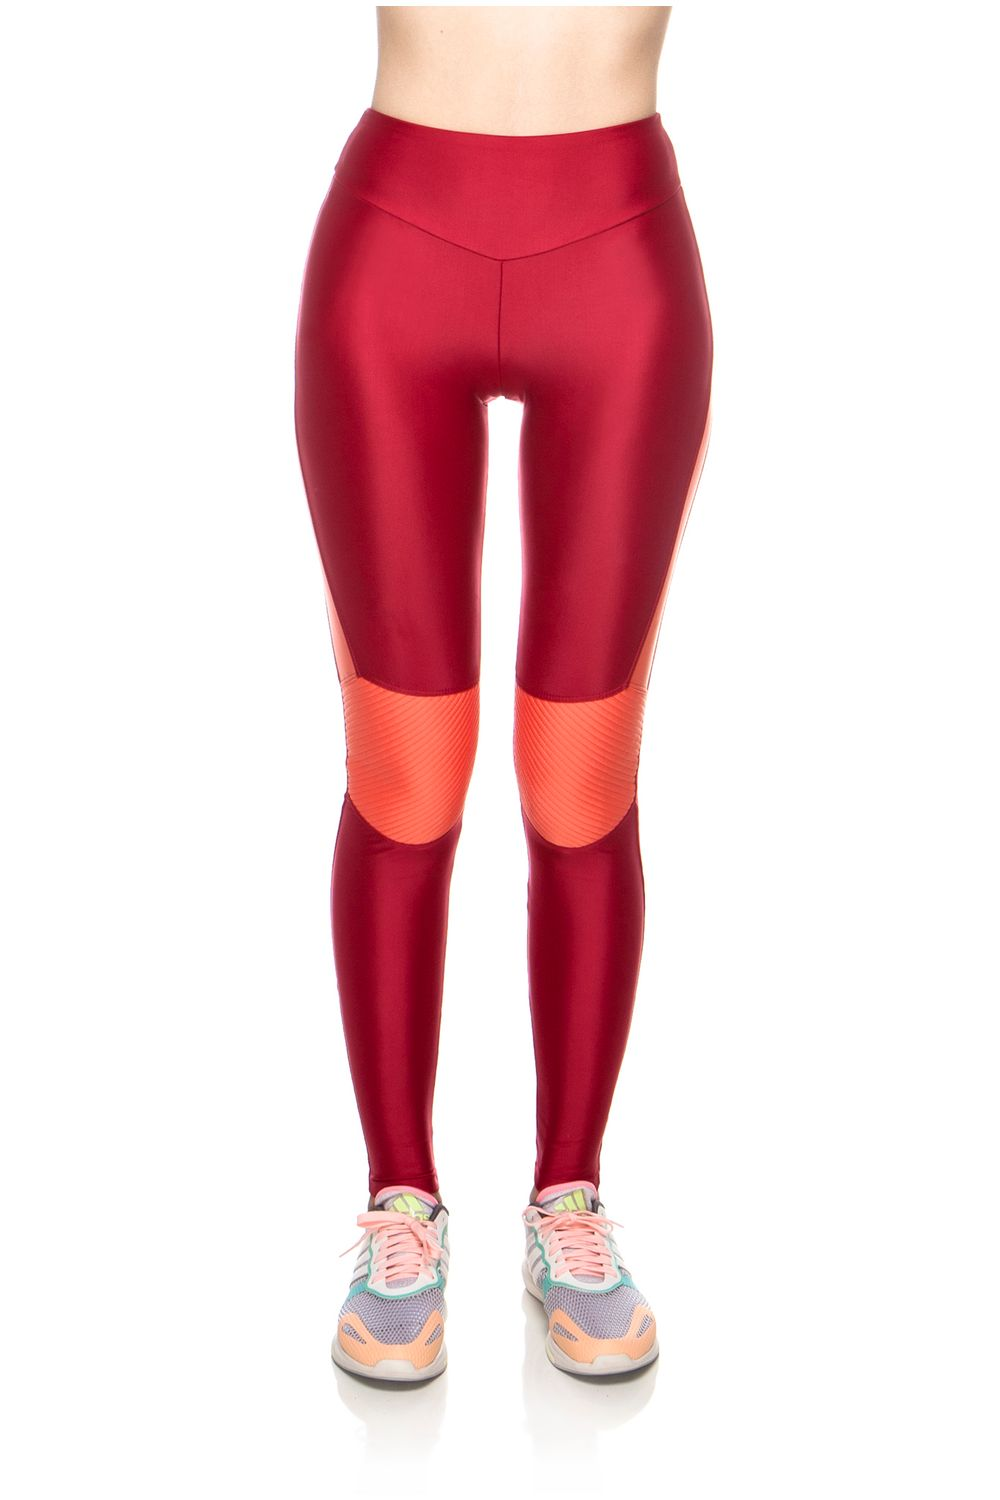 Leggings-Fitness-Joelho-Matela---3-